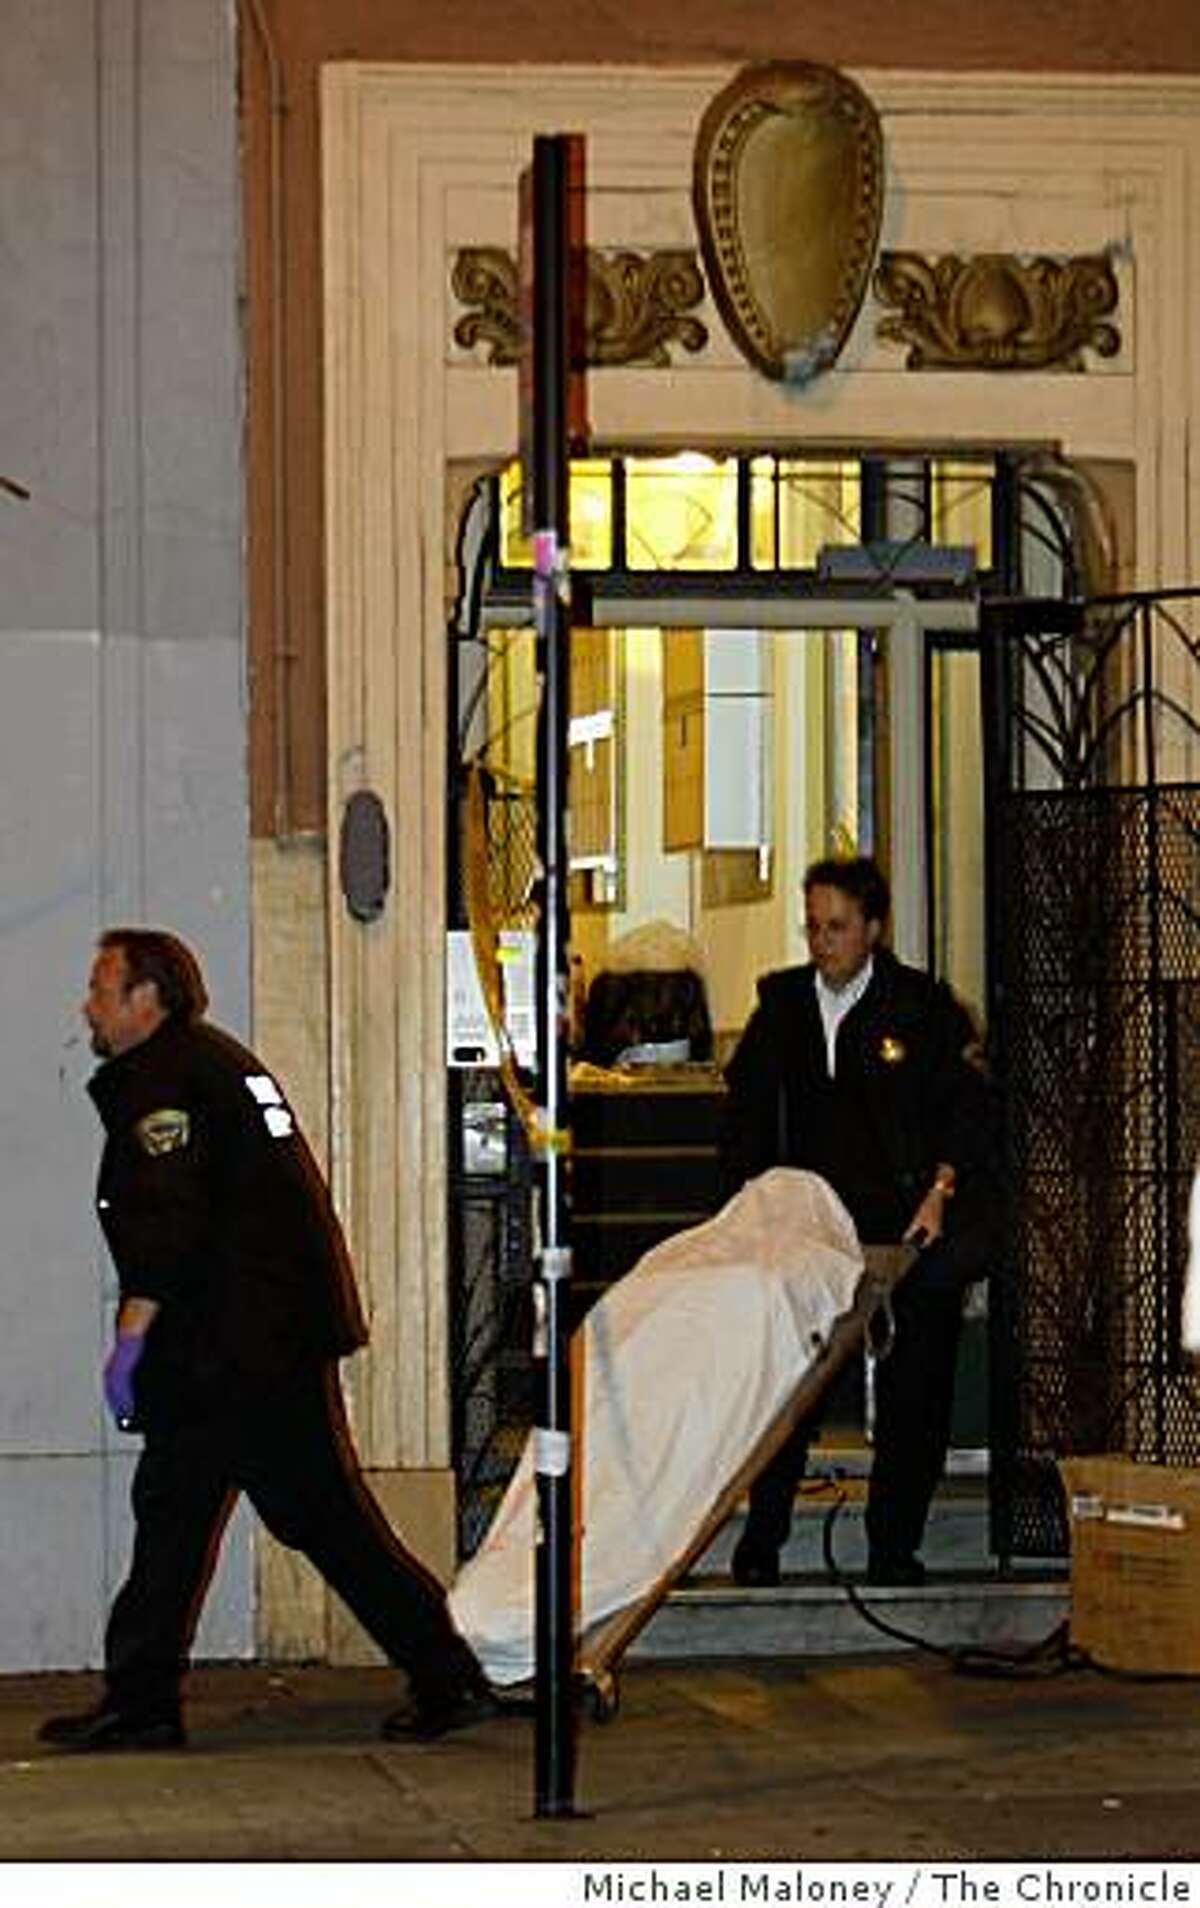 San Francisco coroners remove a body from the apartment at 816 Geary Street in San Francisco, Calif., where one person died on January 12, 2009 from a gas leak.